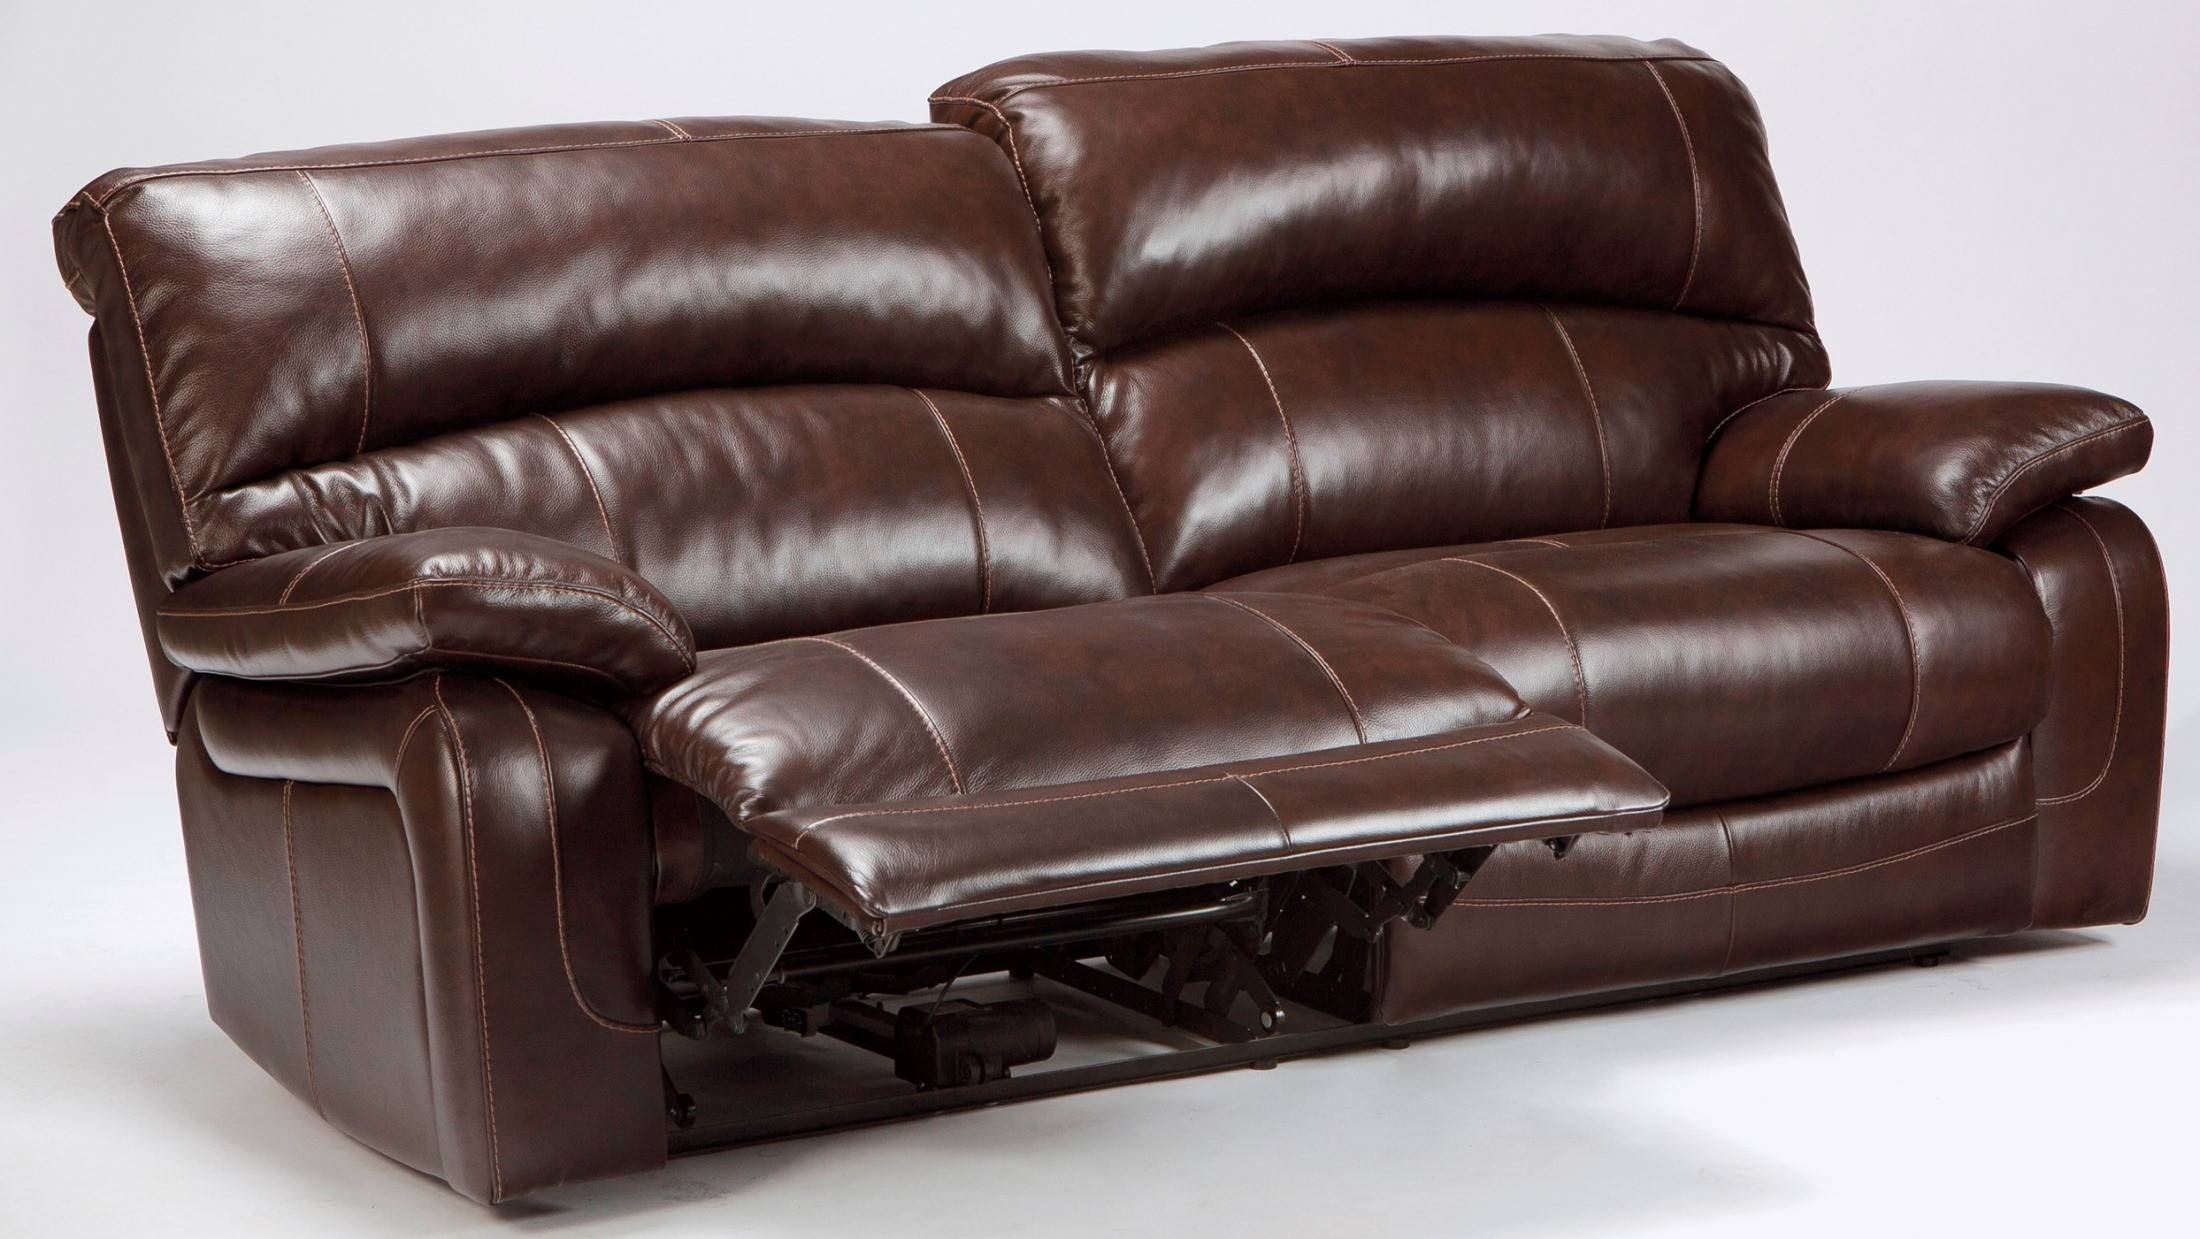 Damacio Dark Brown 2 Seat Power Reclining Sofa From Ashley Inside 2 Seater Recliner Leather Sofas (View 4 of 30)